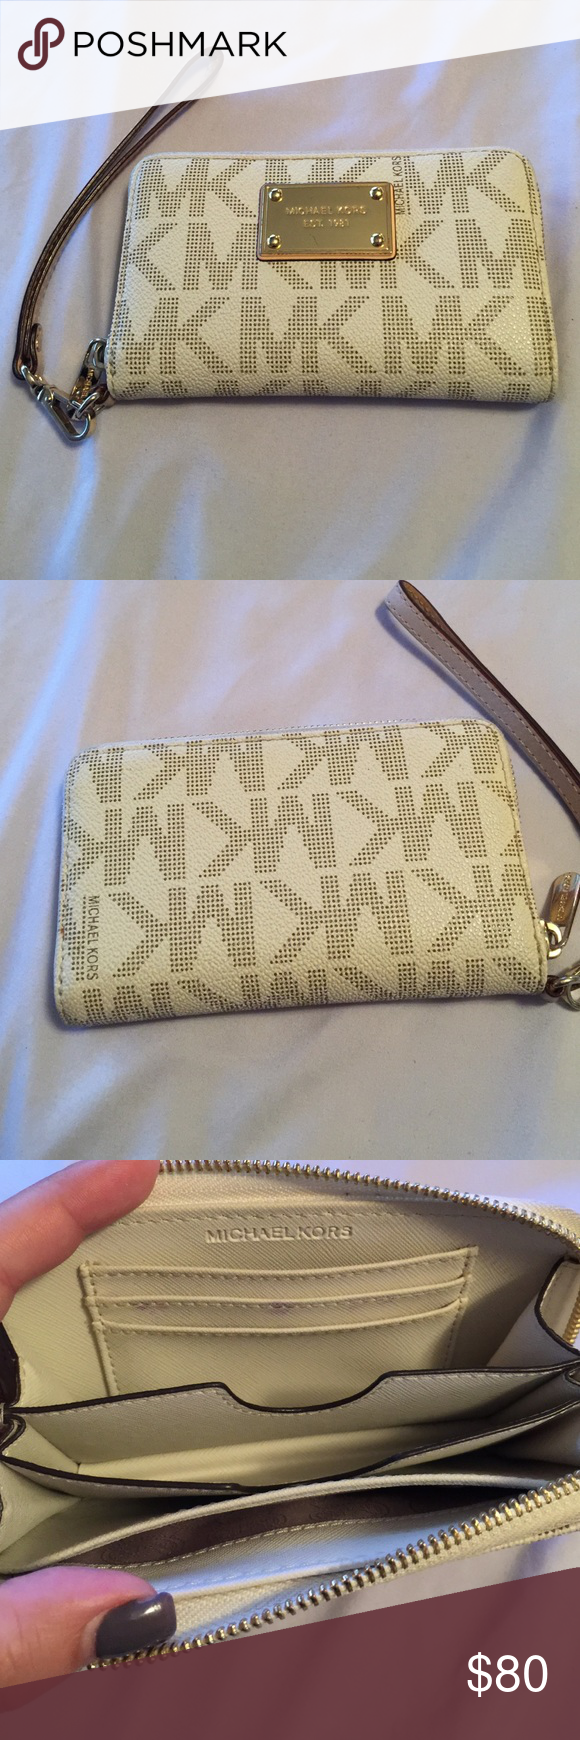 Michael Kors Wristlet Wallet Good condition! normal wear! Michael Kors Bags Wallets